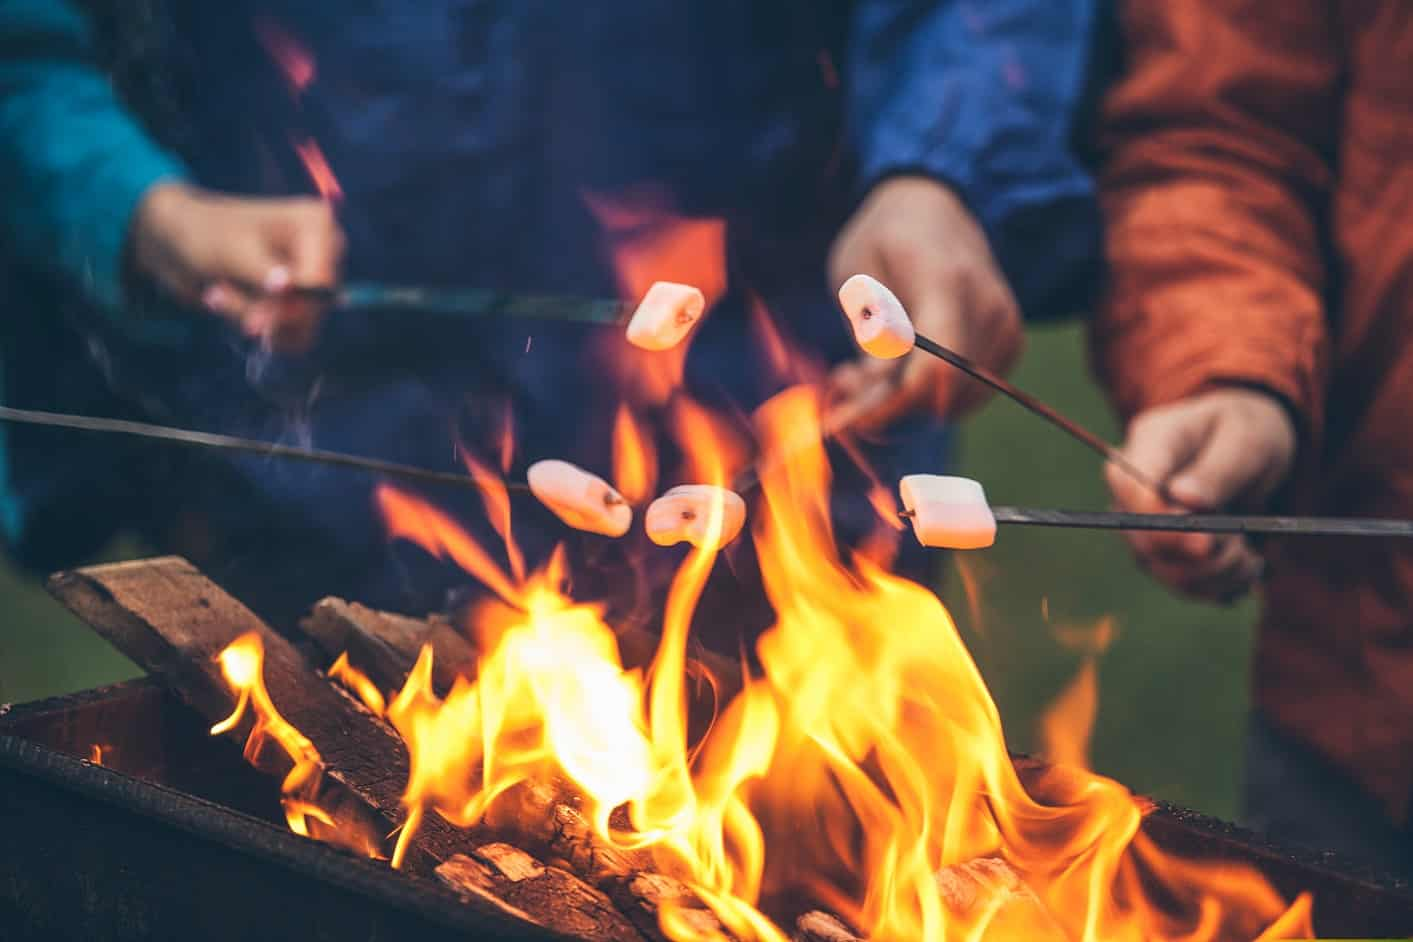 hands of friends roasting marshmallows over the fire